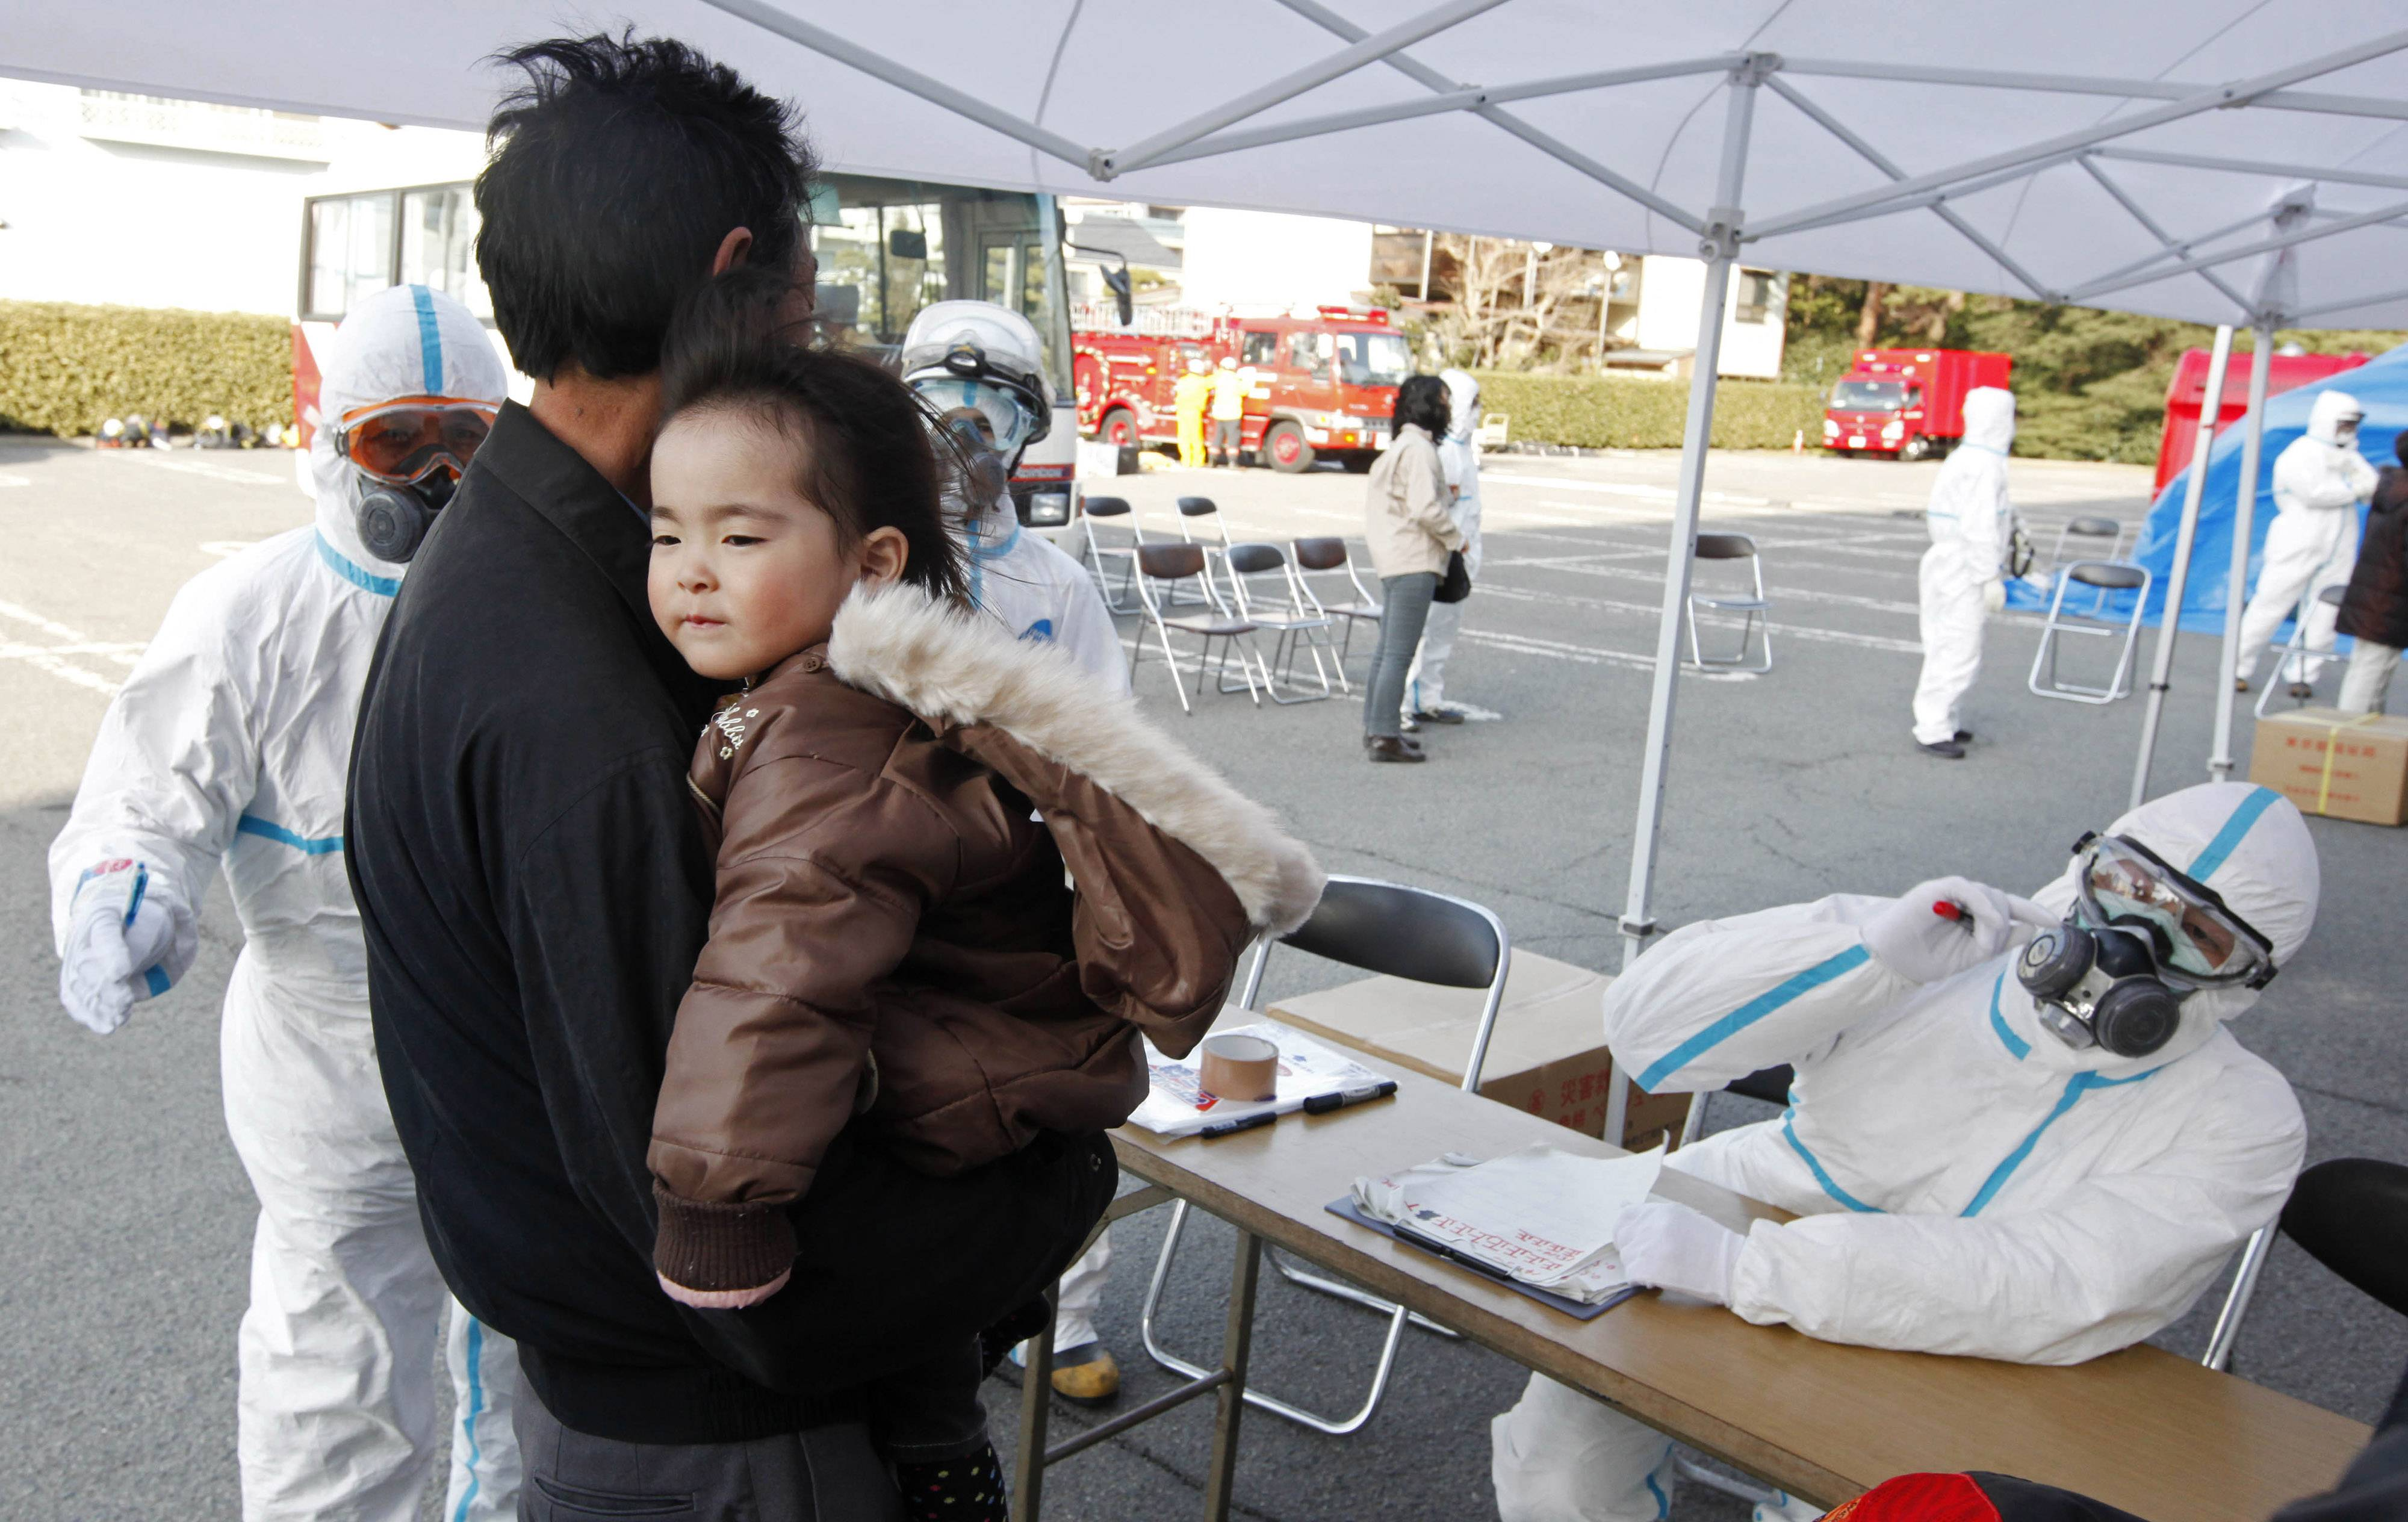 A man holds his baby as they are prepared to be scanned for levels of radiation in Koriyama, Fukushima Prefecture, Japan, Sunday, March 13, 2011. Friday's quake and tsunami damaged two nuclear reactors at a power plant in the prefecture, and at least one of them appeared to be going through a partial meltdown, raising fears of a radiation leak.